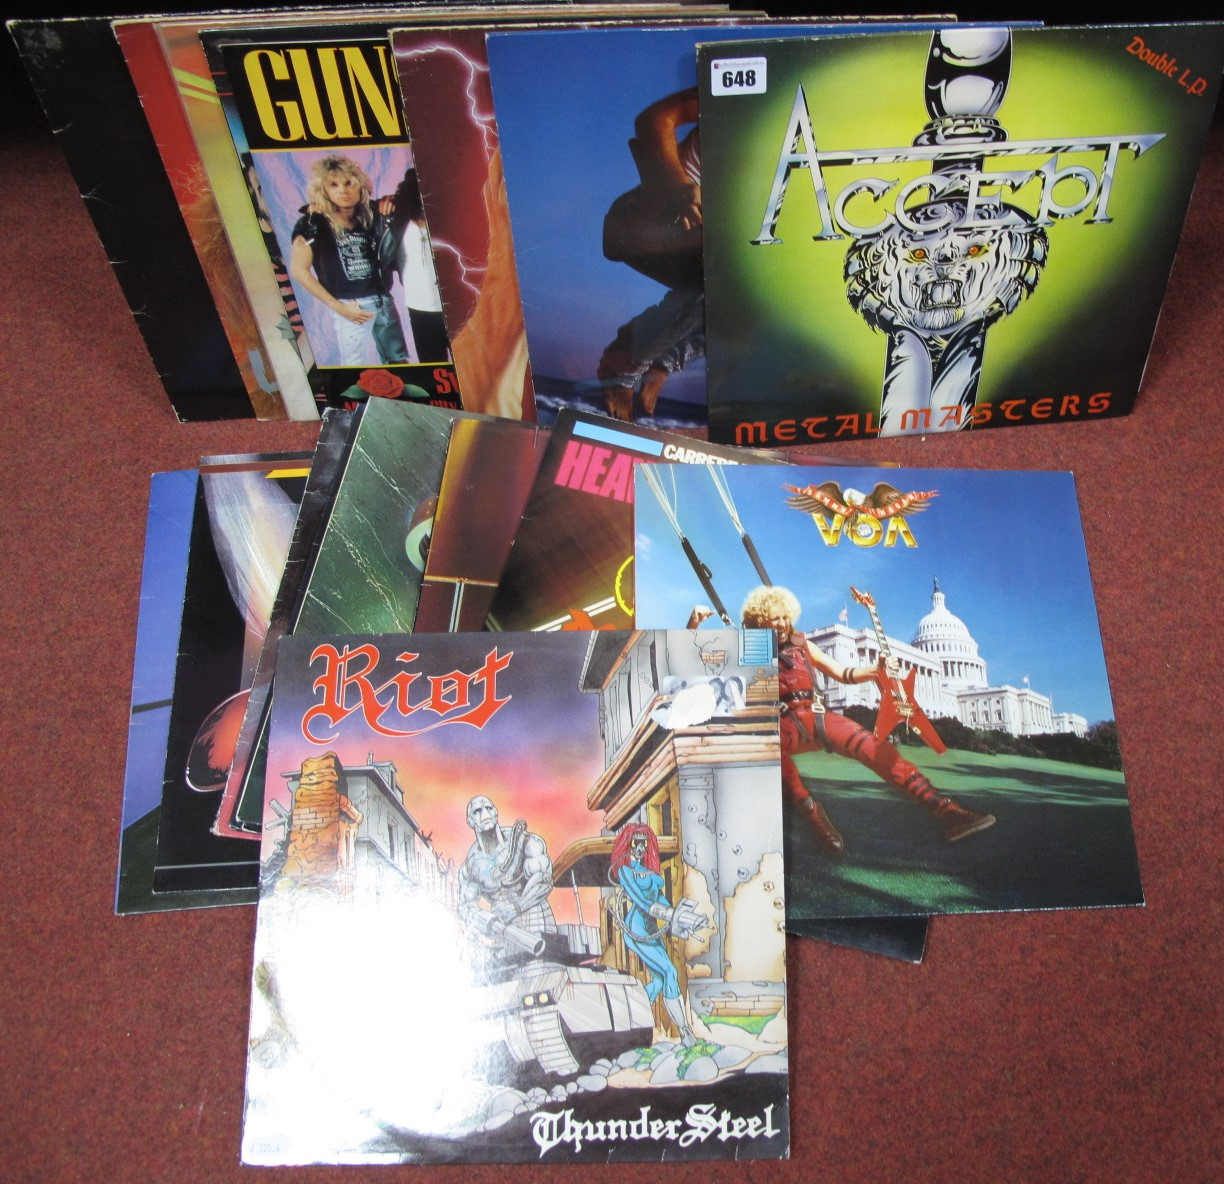 Lot 648 - US/UK Metal and Rock - 'Metal For Muthas', Riot, Girl, Guns n' Roses, Force, Hot Spikes, Ramones,